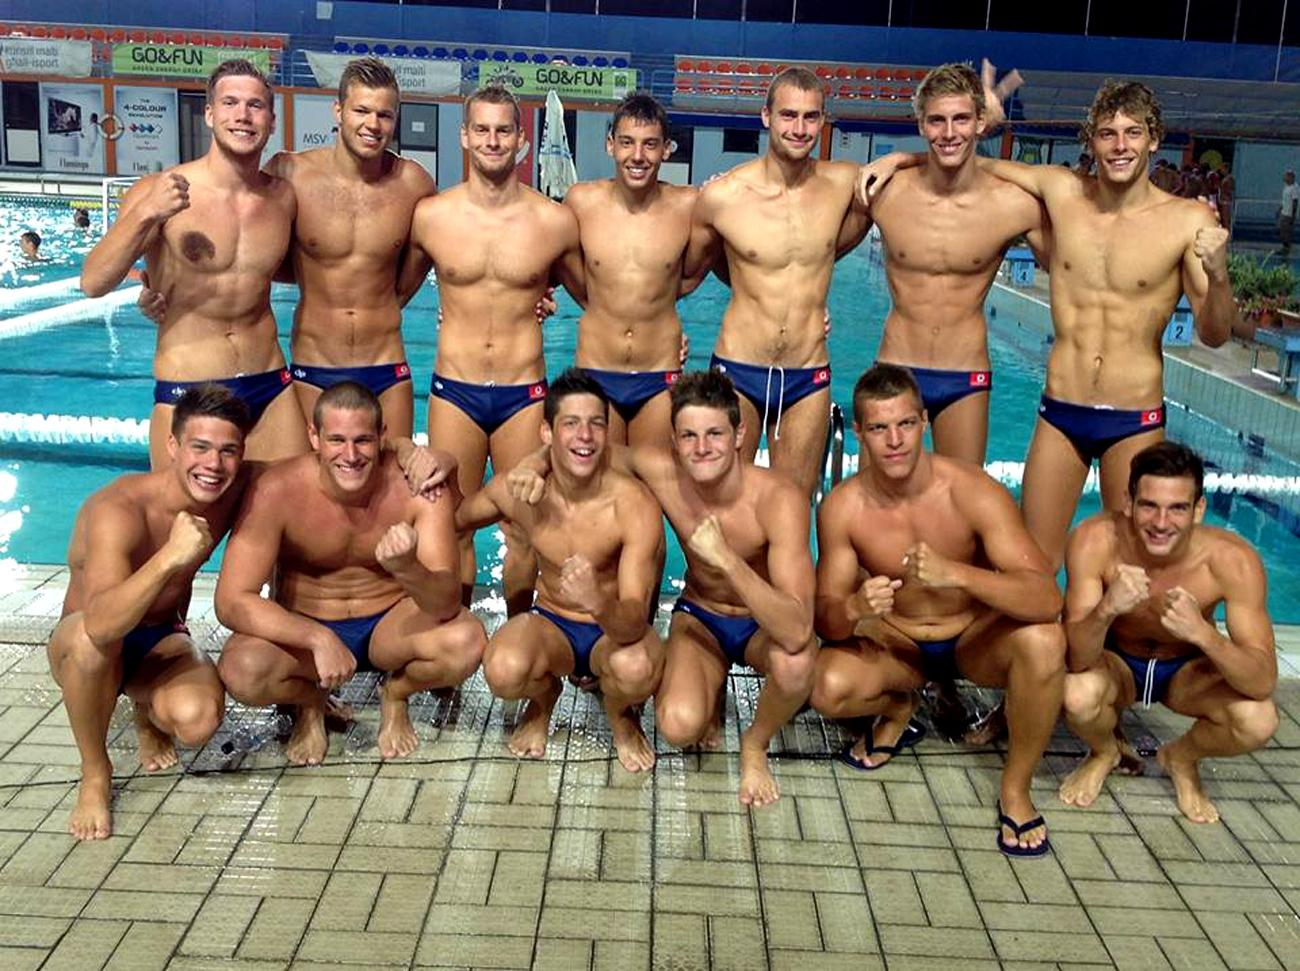 Water Polo: Defending World Champions Hungary Wipe Out Argentina 21-4